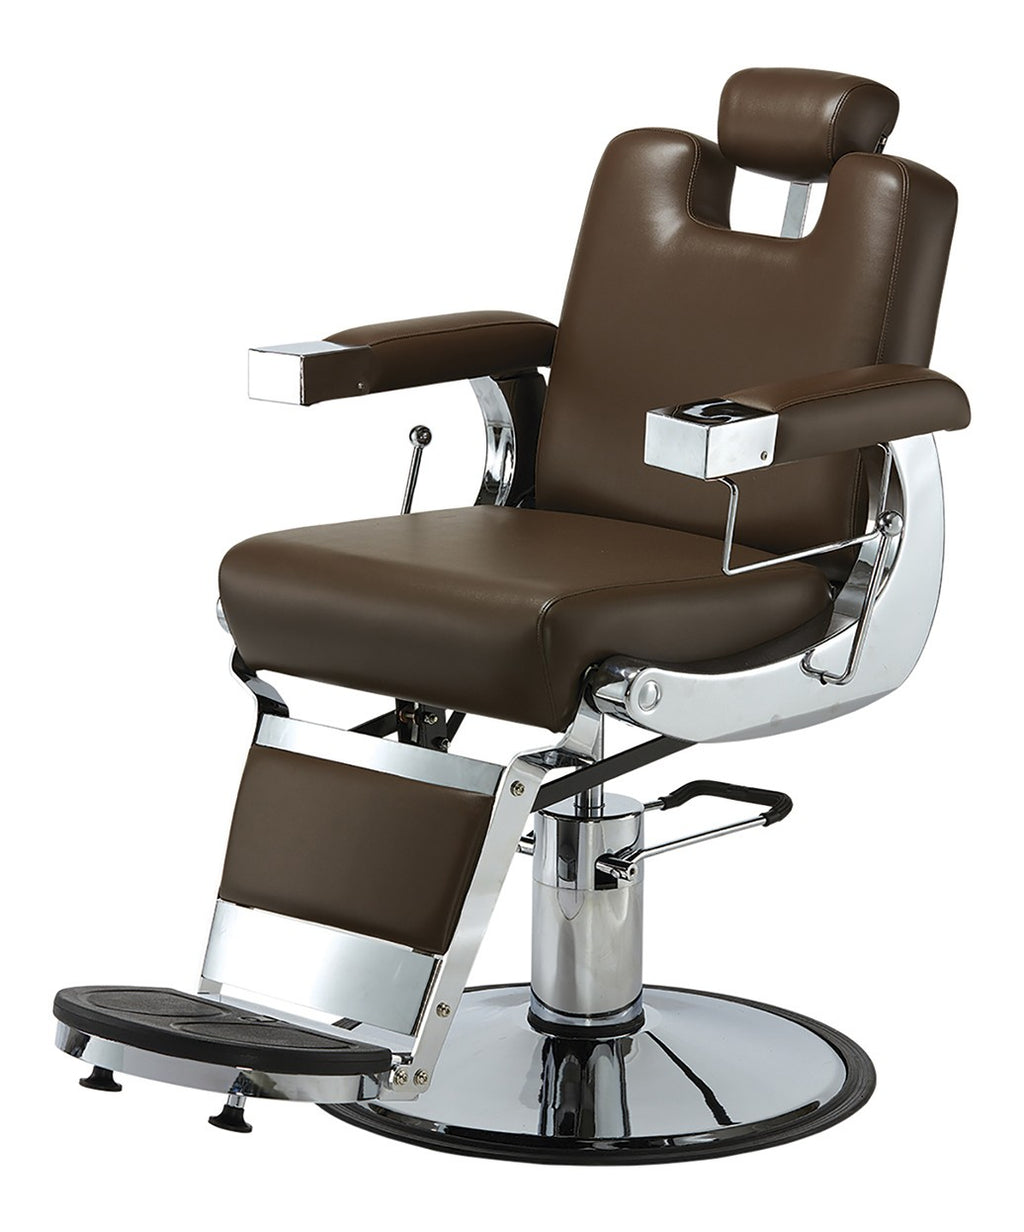 Pibbs Capo Heavy Duty Barber Chair 3/4 View